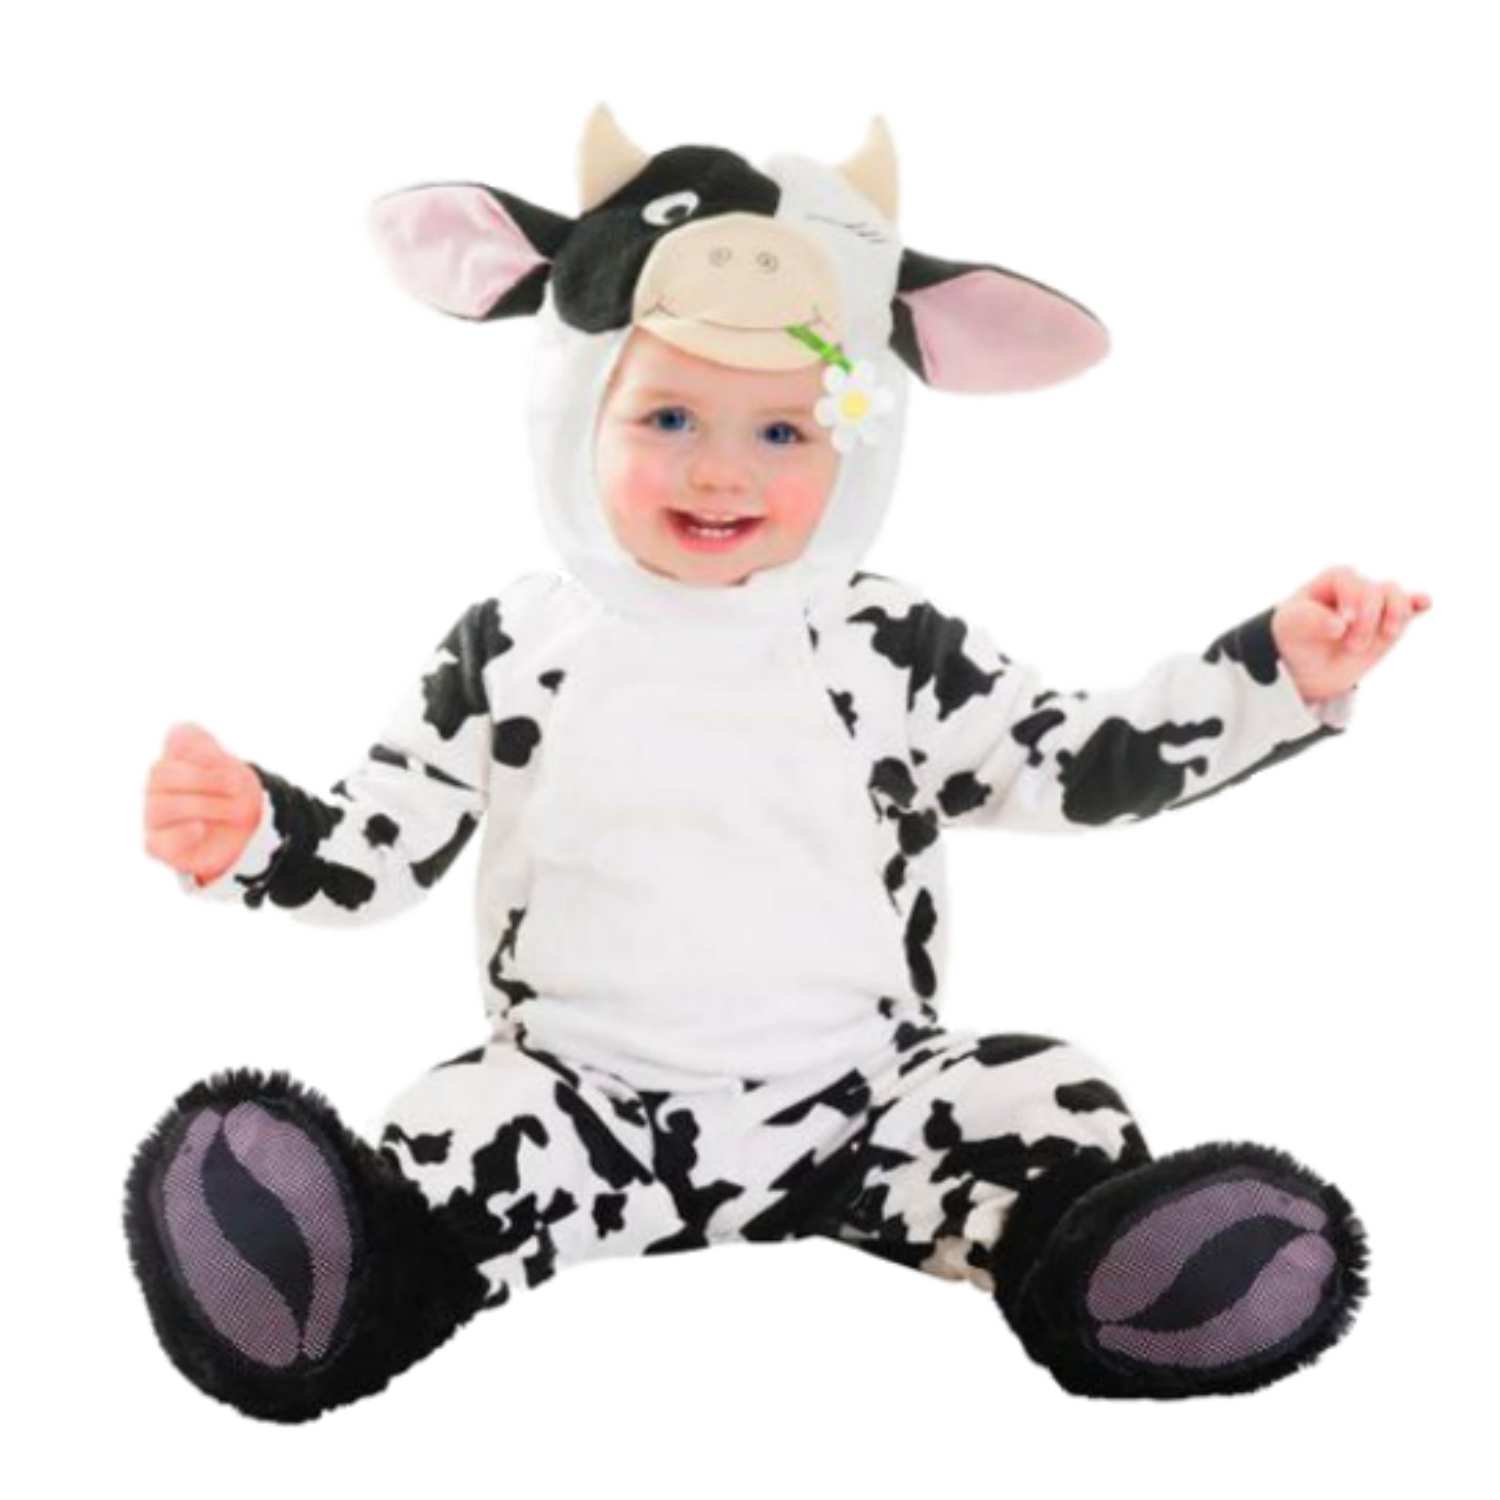 Goodmark Infant Boys u0026 Girls Cutie Cow Costume Plush Baby Cow Suit ...  sc 1 st  Walmart & Goodmark Infant Boys u0026 Girls Cutie Cow Costume Plush Baby Cow Suit 0 ...